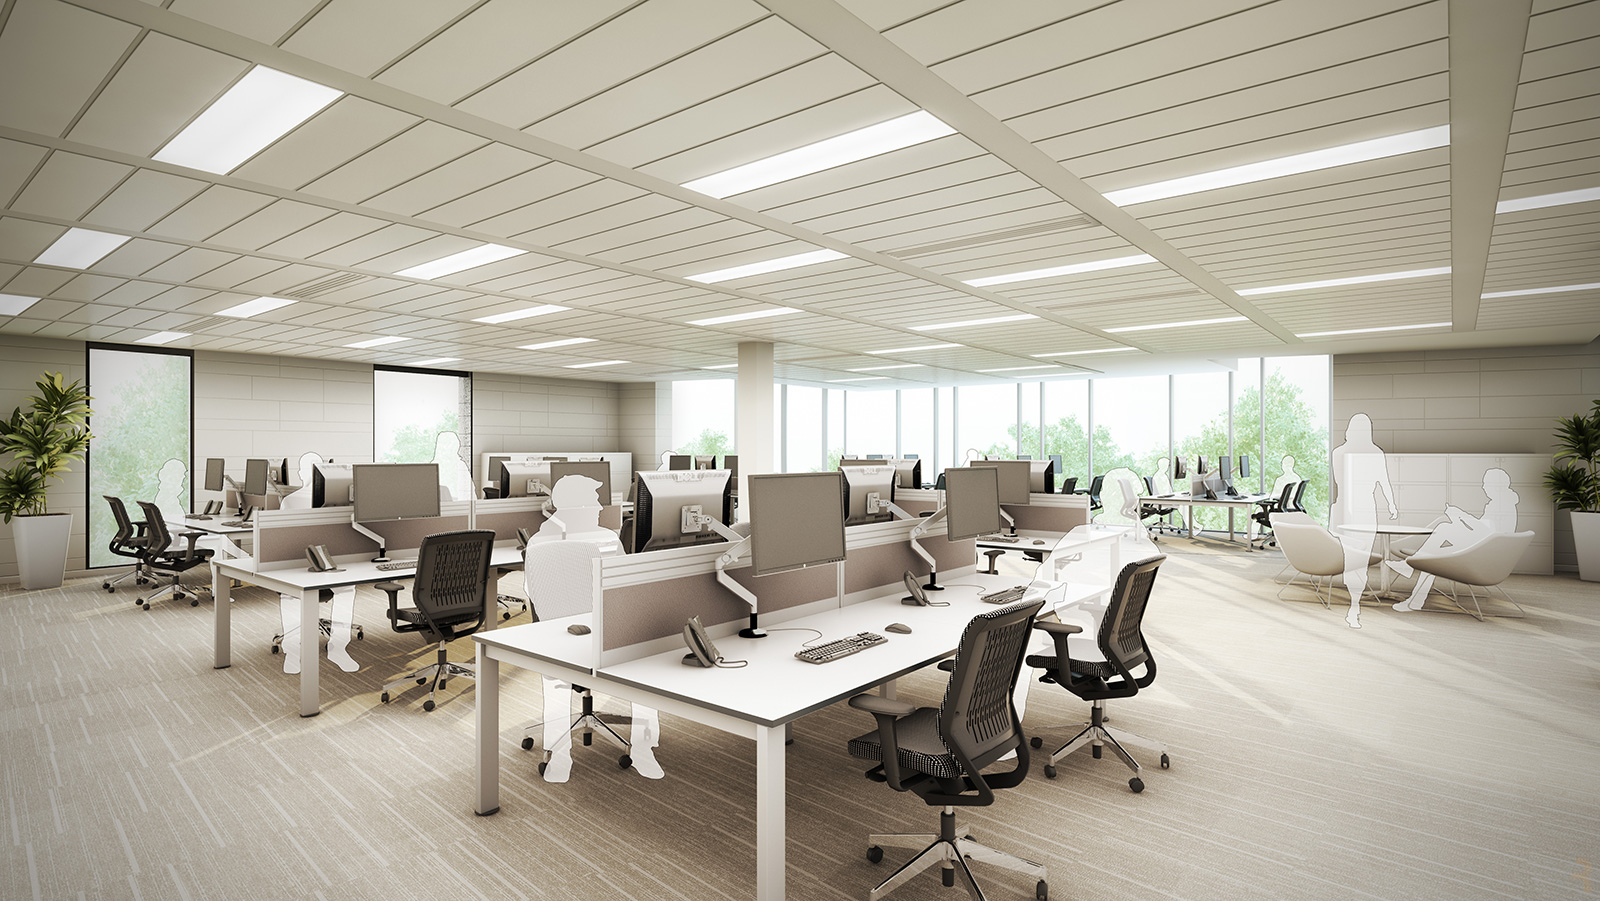 How To Make Office Space Investment Better